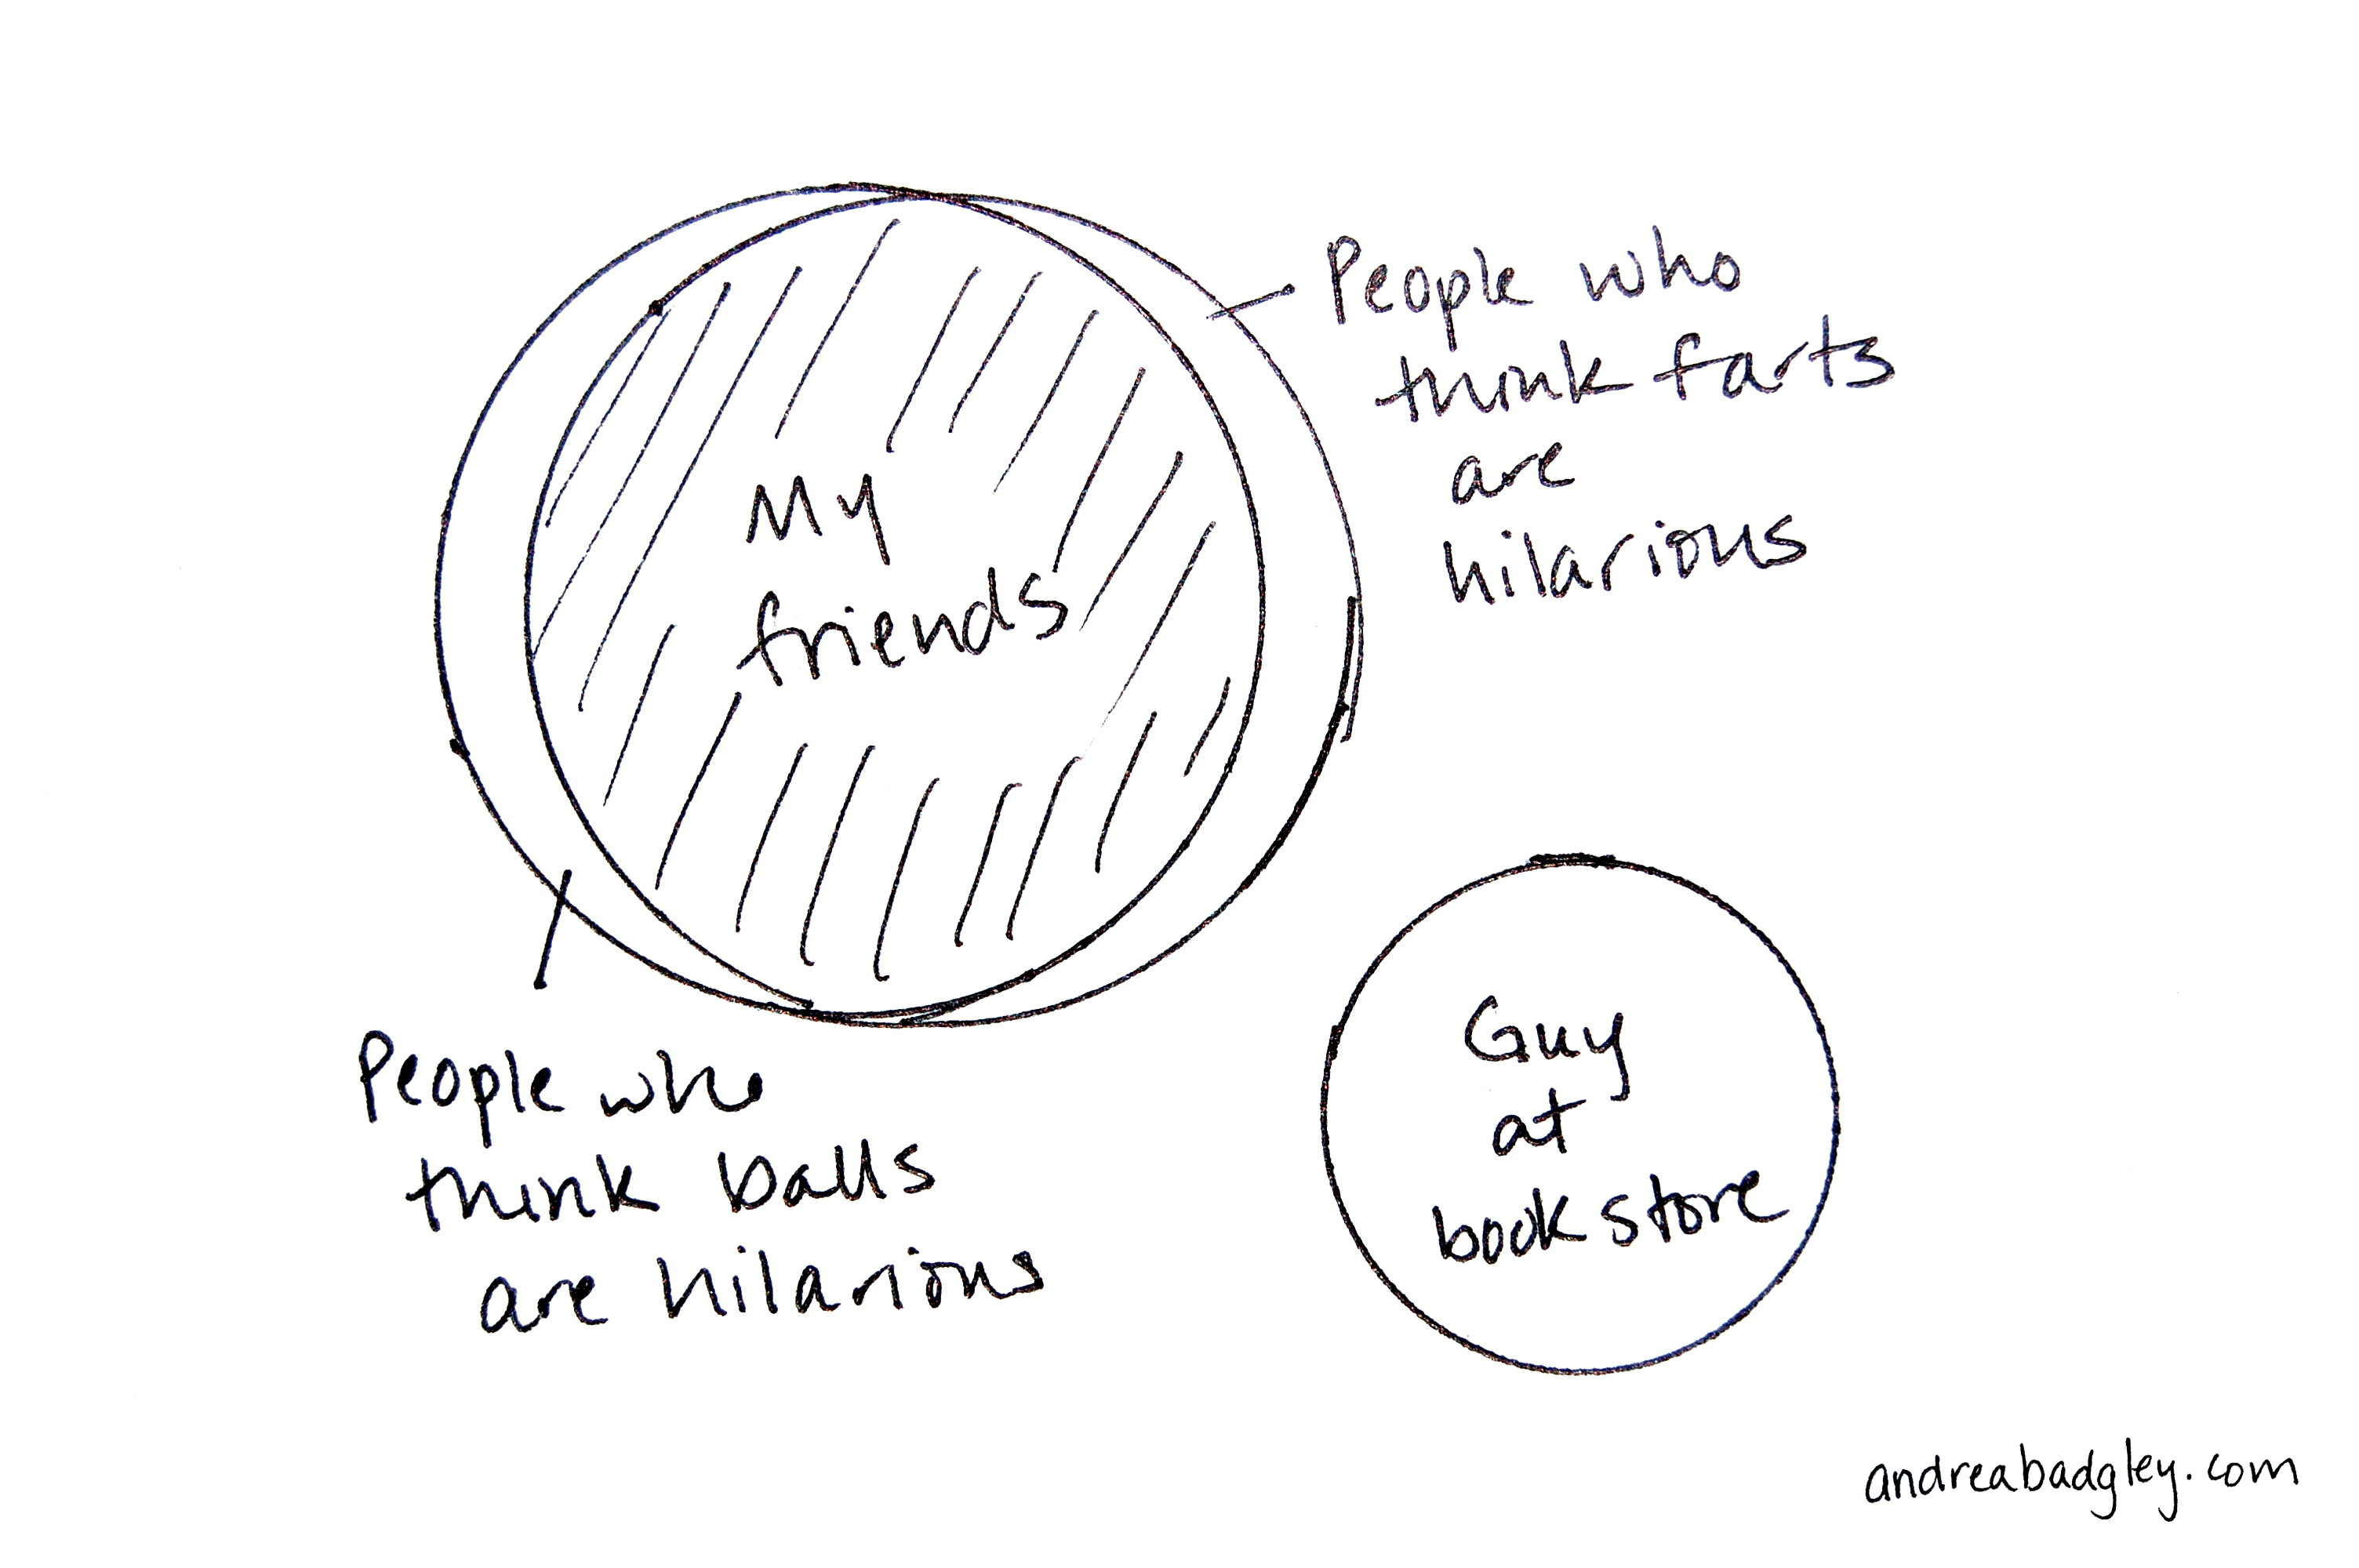 Venn Diagram The Intersection Of The Hilarity Of Balls